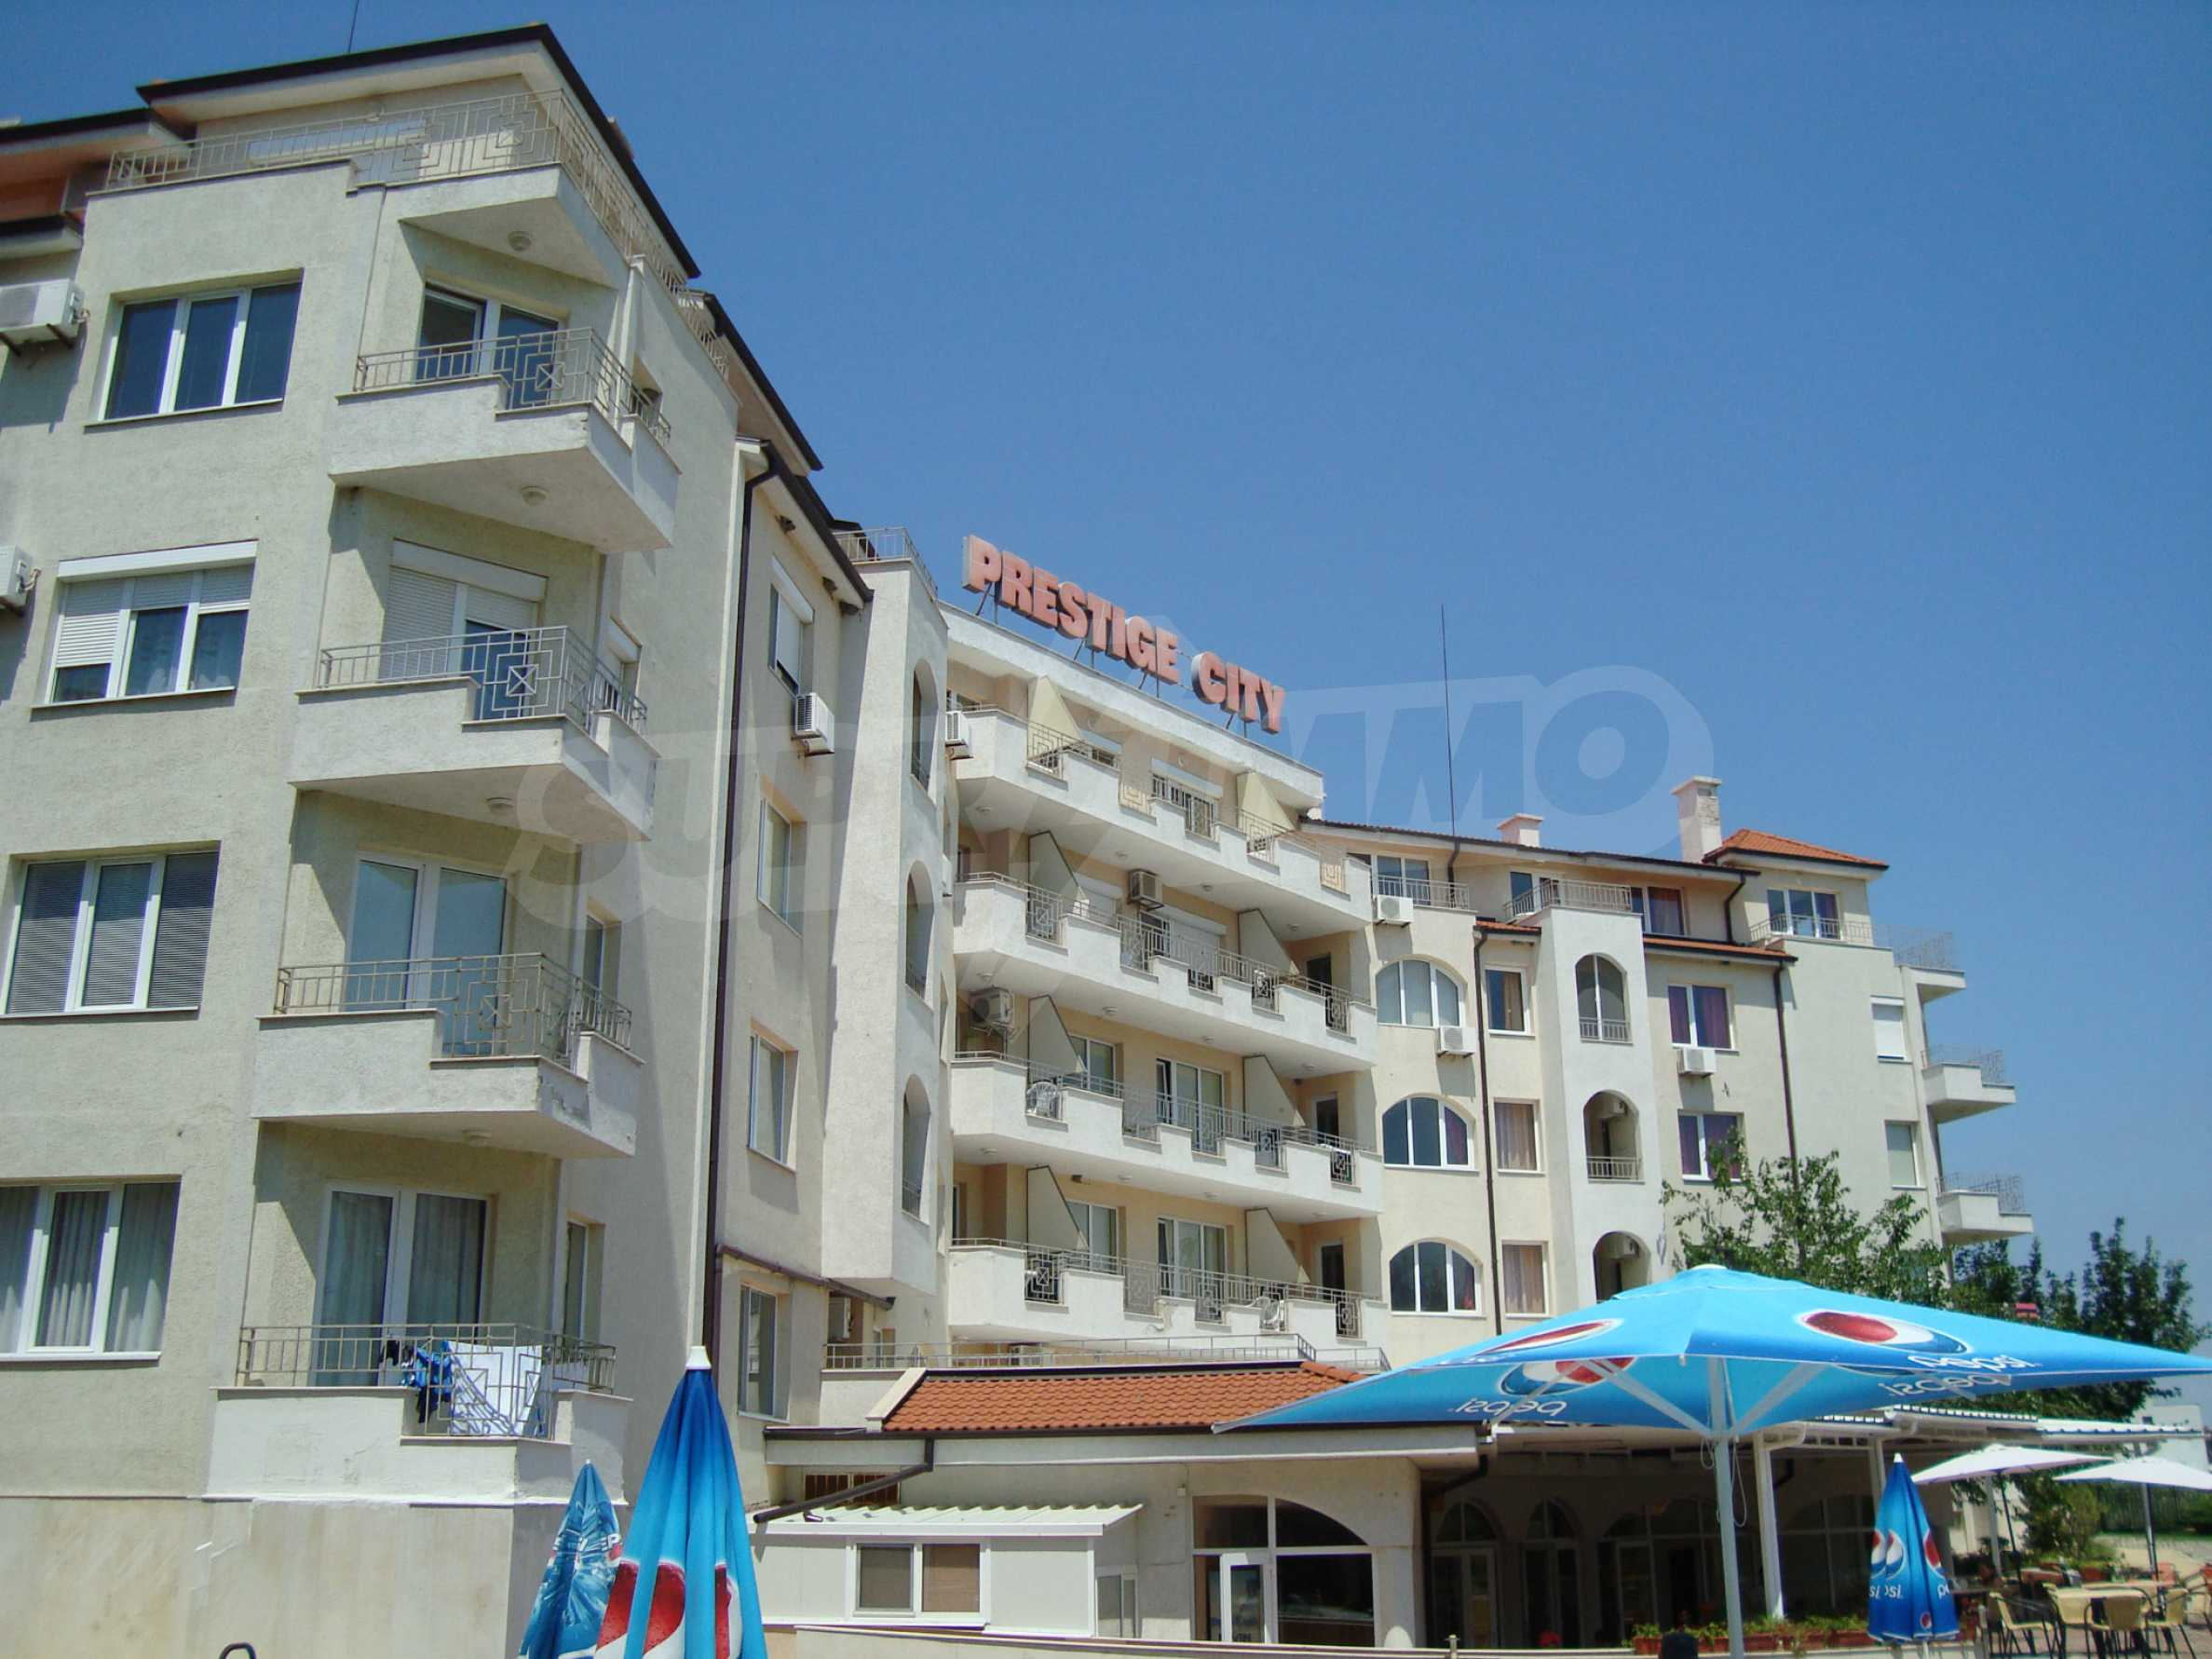 One-bedroom apartment in Prestige City 1 complex in Sunny beach 28